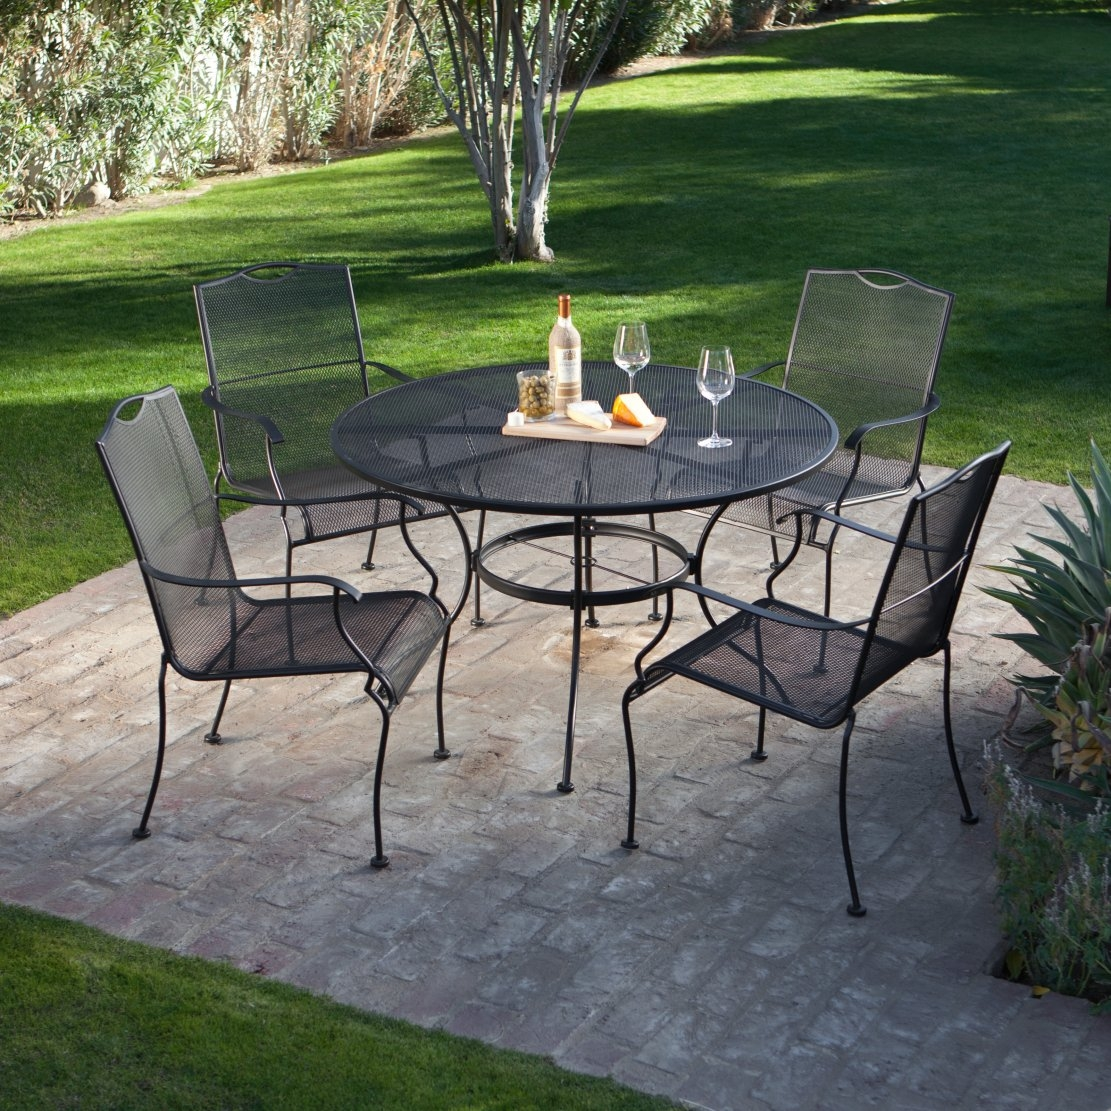 Patio Furniture Table And Chairs 5 Piece Wrought Iron Patio Furniture Dining Set Seats 4